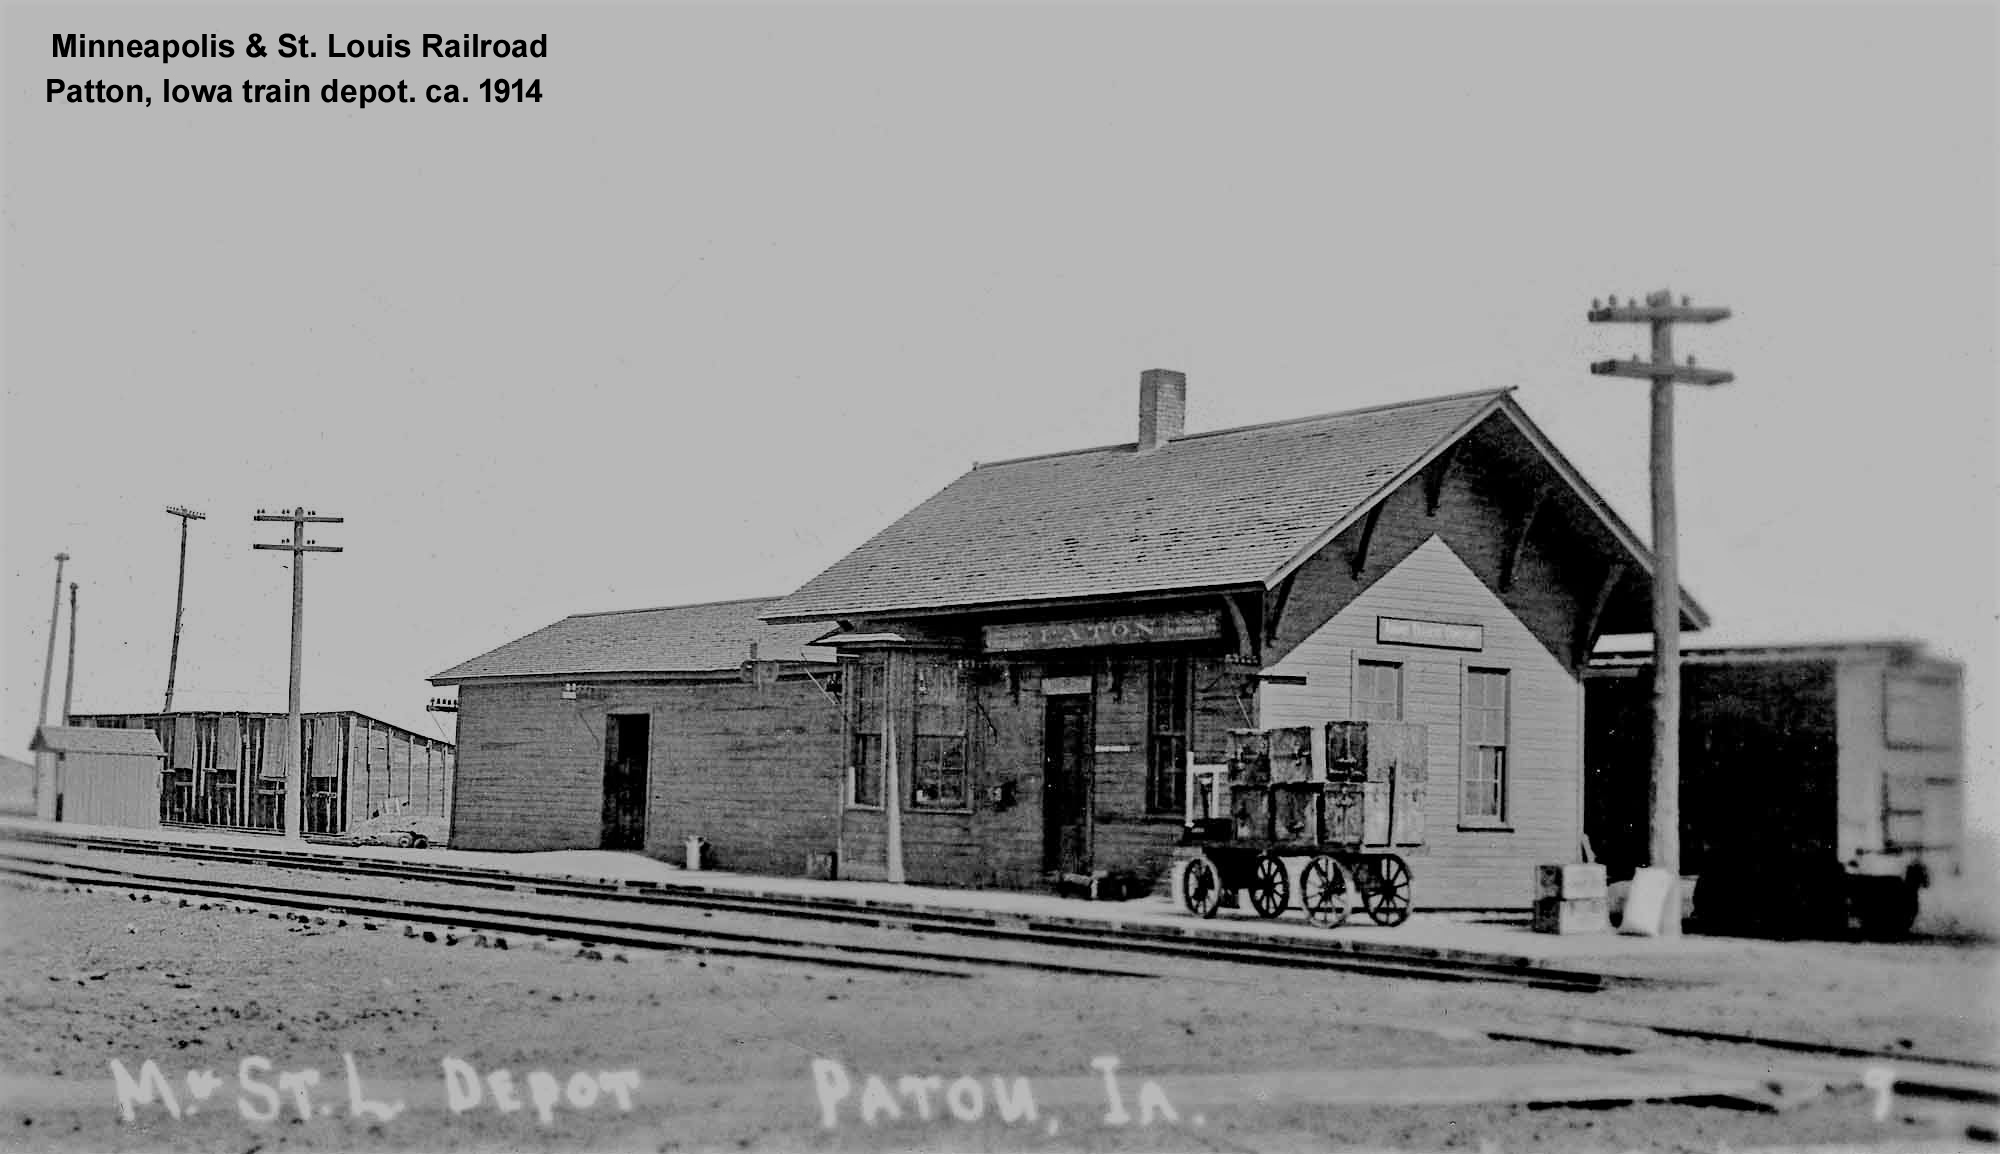 Patton, Iowa depot